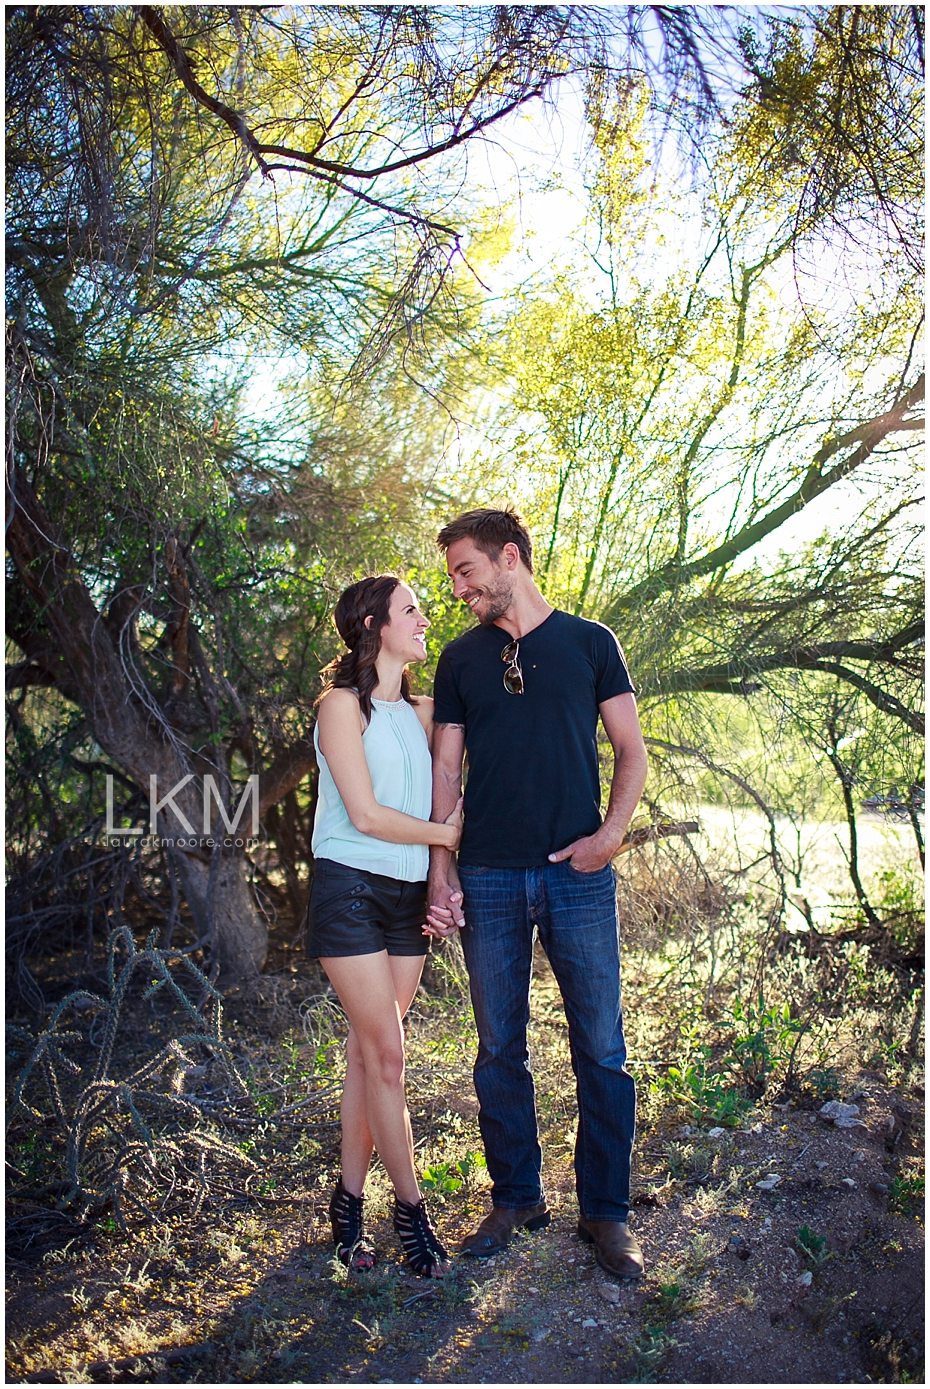 Tucson-arizona-engagement-session-palo-verde-yellow-flowers-_0002.jpg